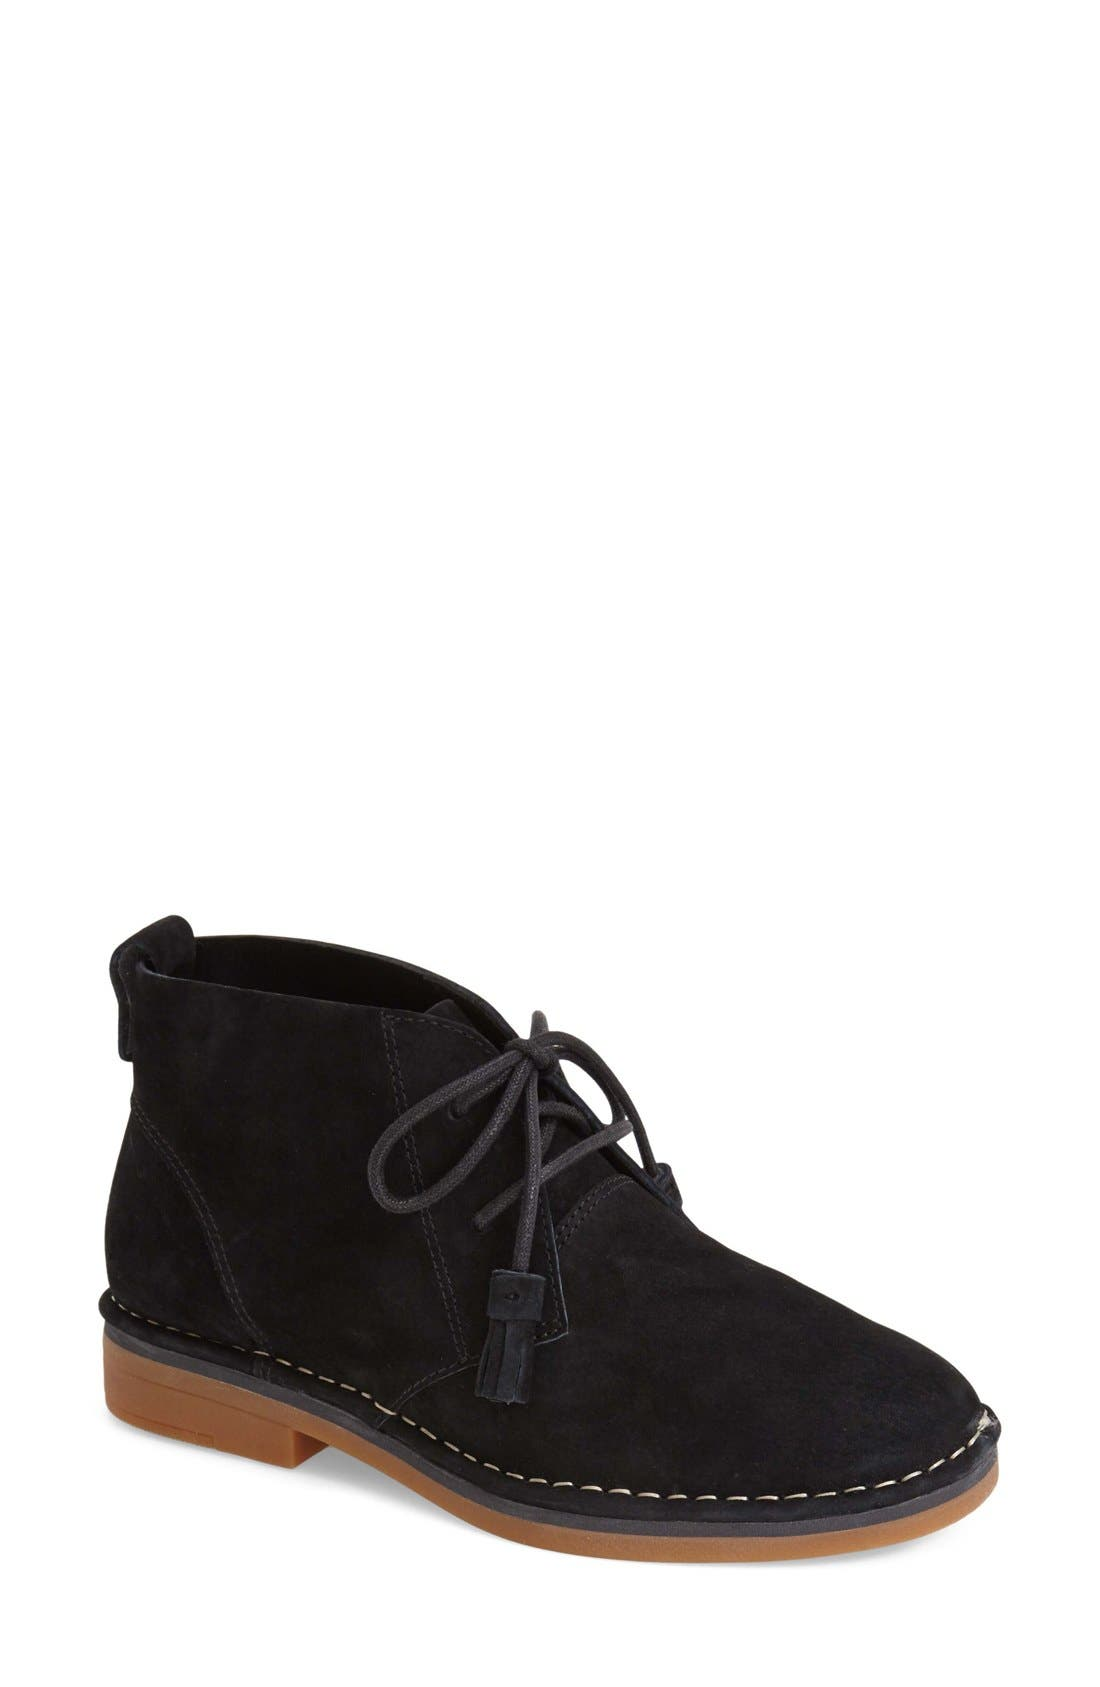 Alternate Image 1 Selected - Hush Puppies® 'Cyra Catelyn' Chukka Boot (Women)